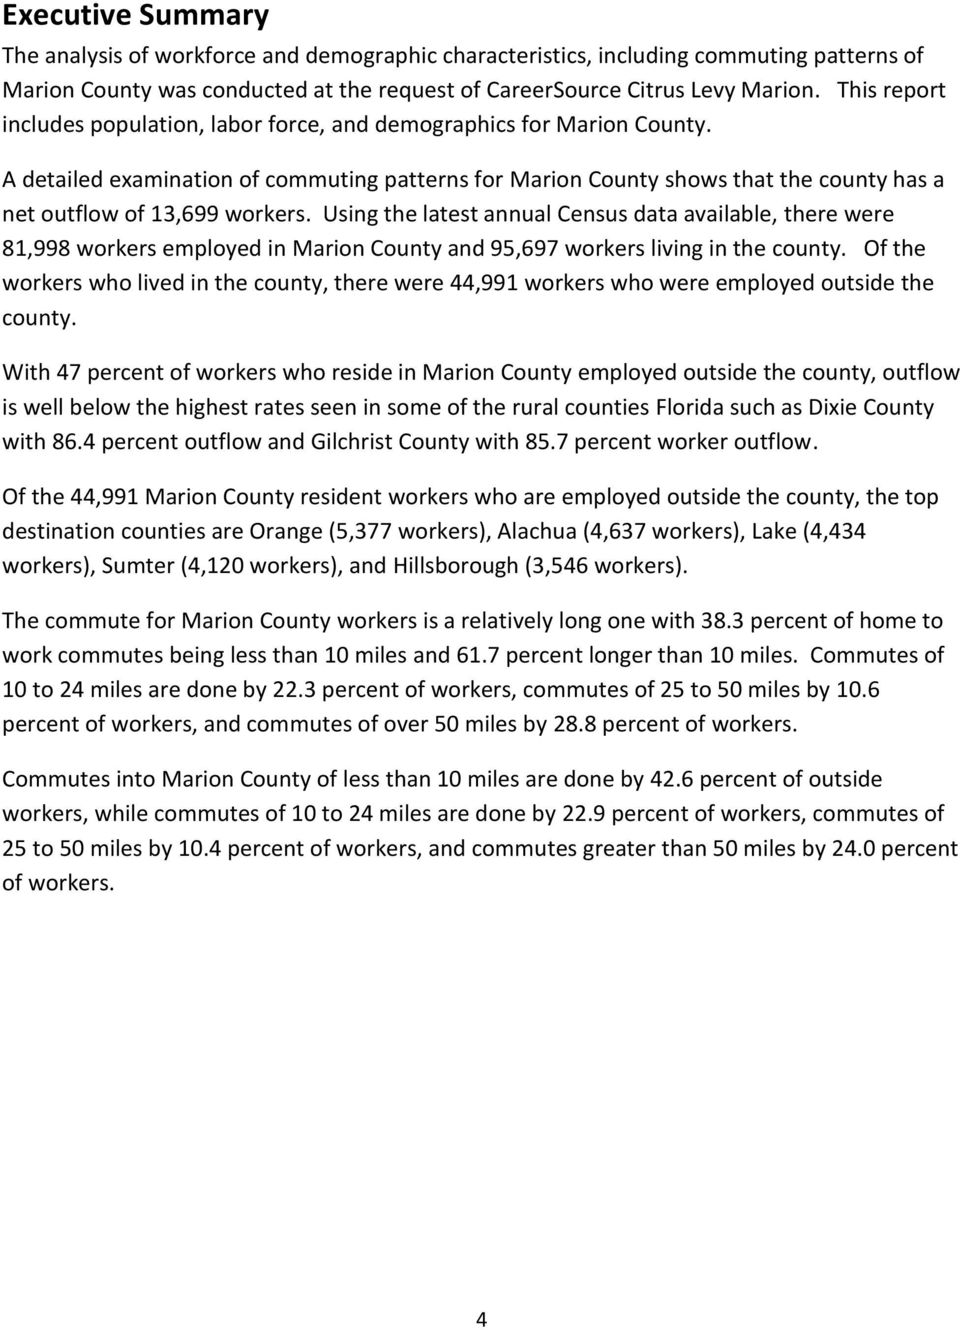 A detailed examination of commuting patterns for Marion County shows that the county has a net outflow of 13,699 workers.